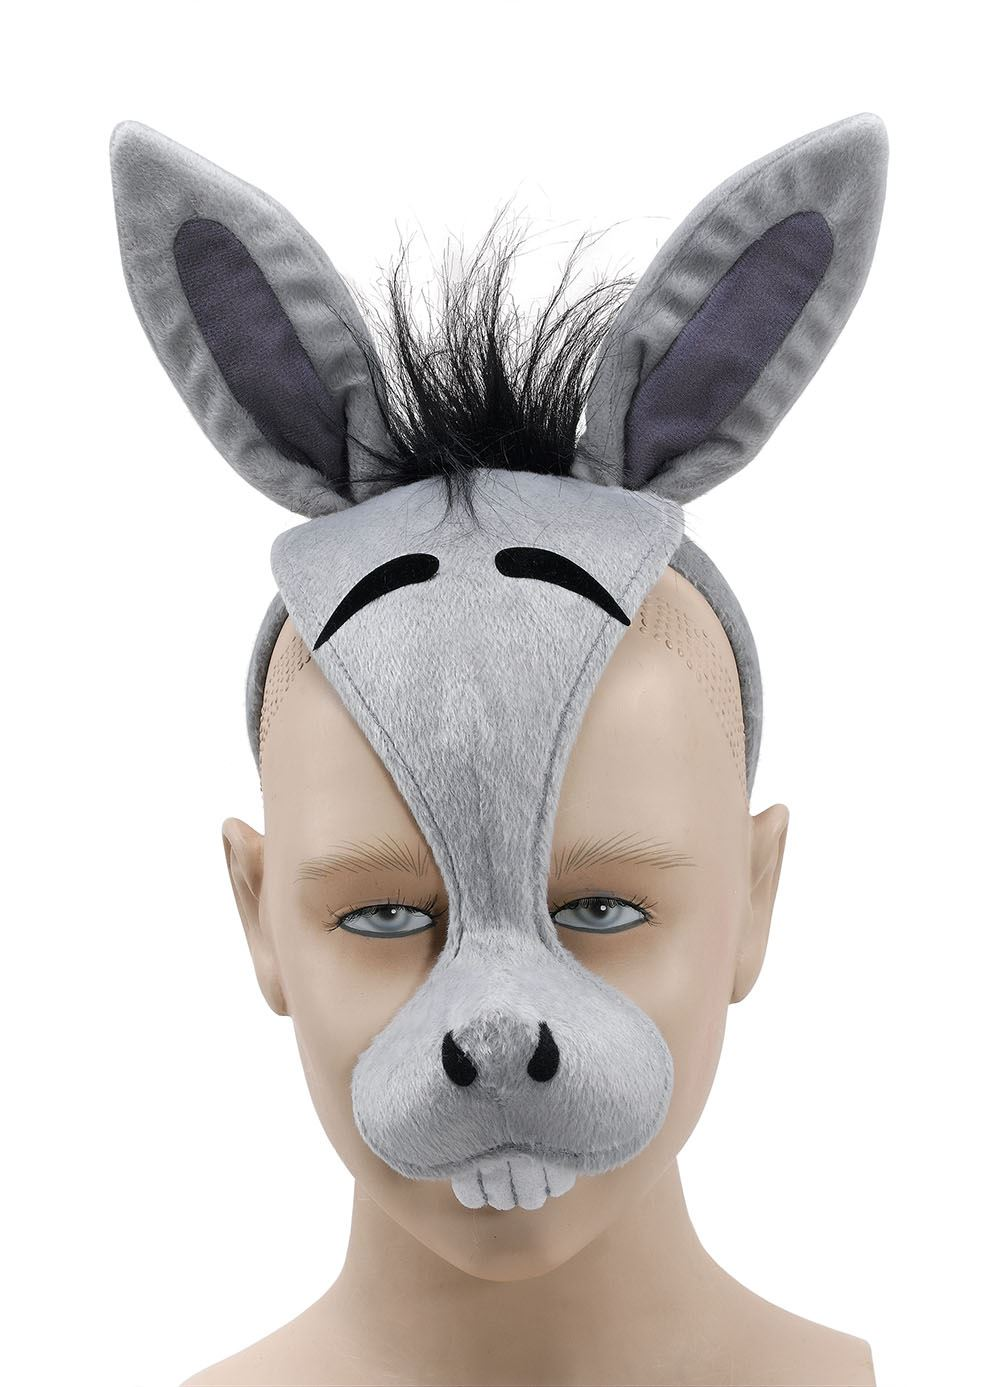 donkey face mask template - talking farm animal mask sound nativity play book day